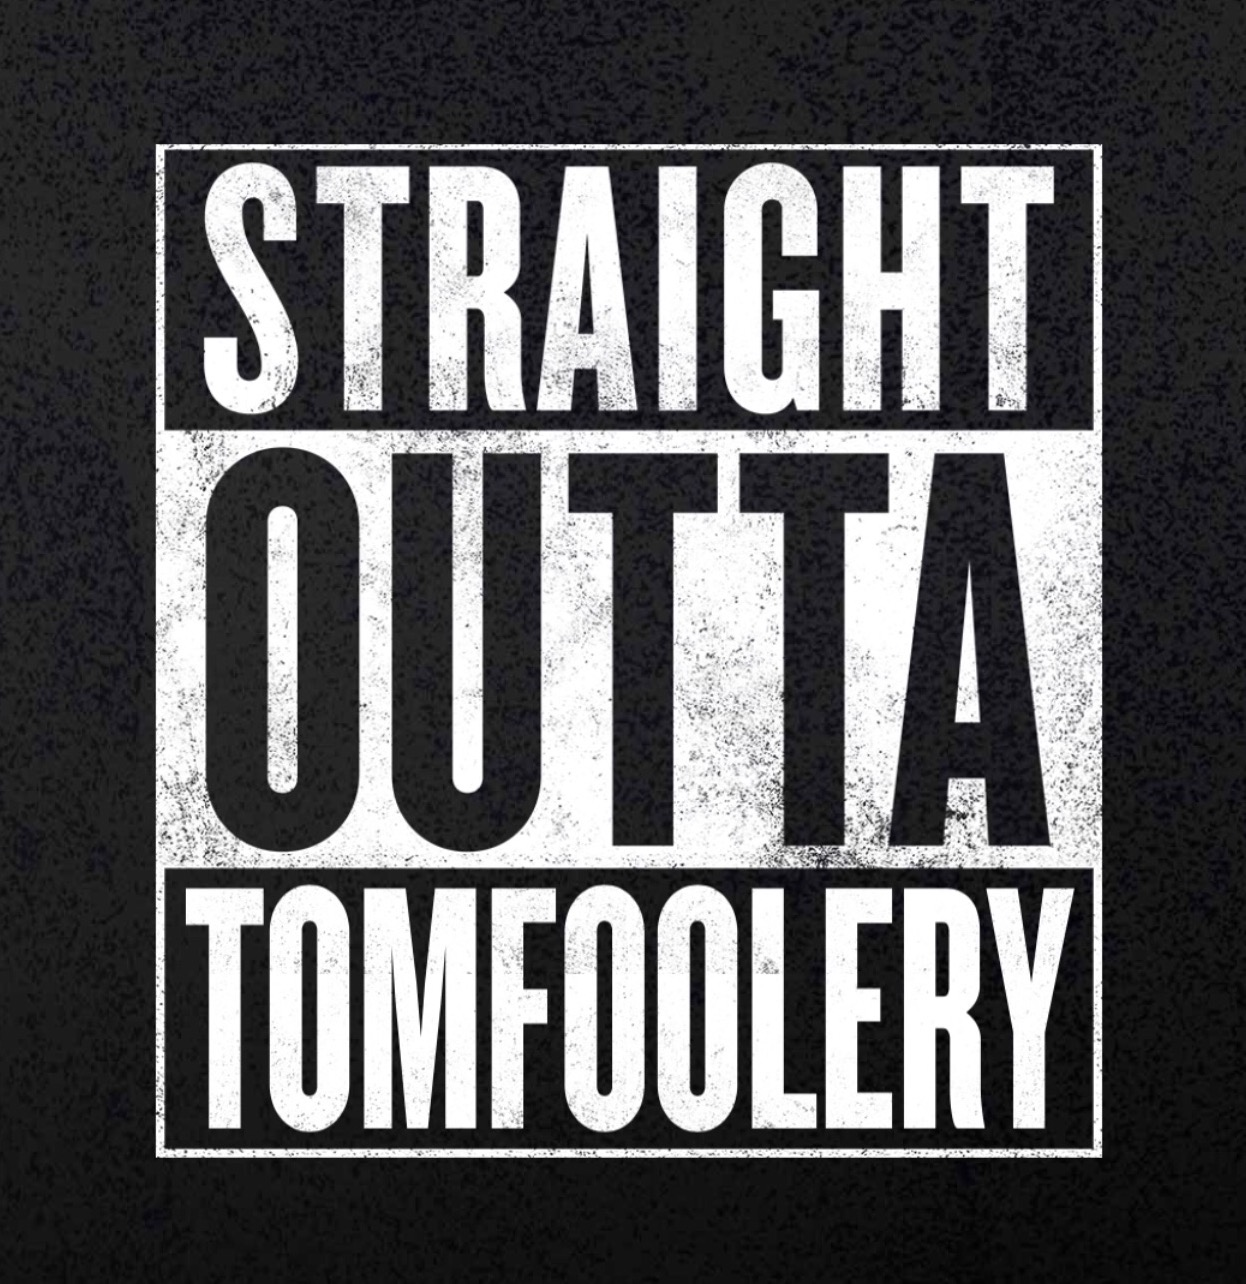 Episode 18:  Four Years of Tomfoolery… Is There More to Come?